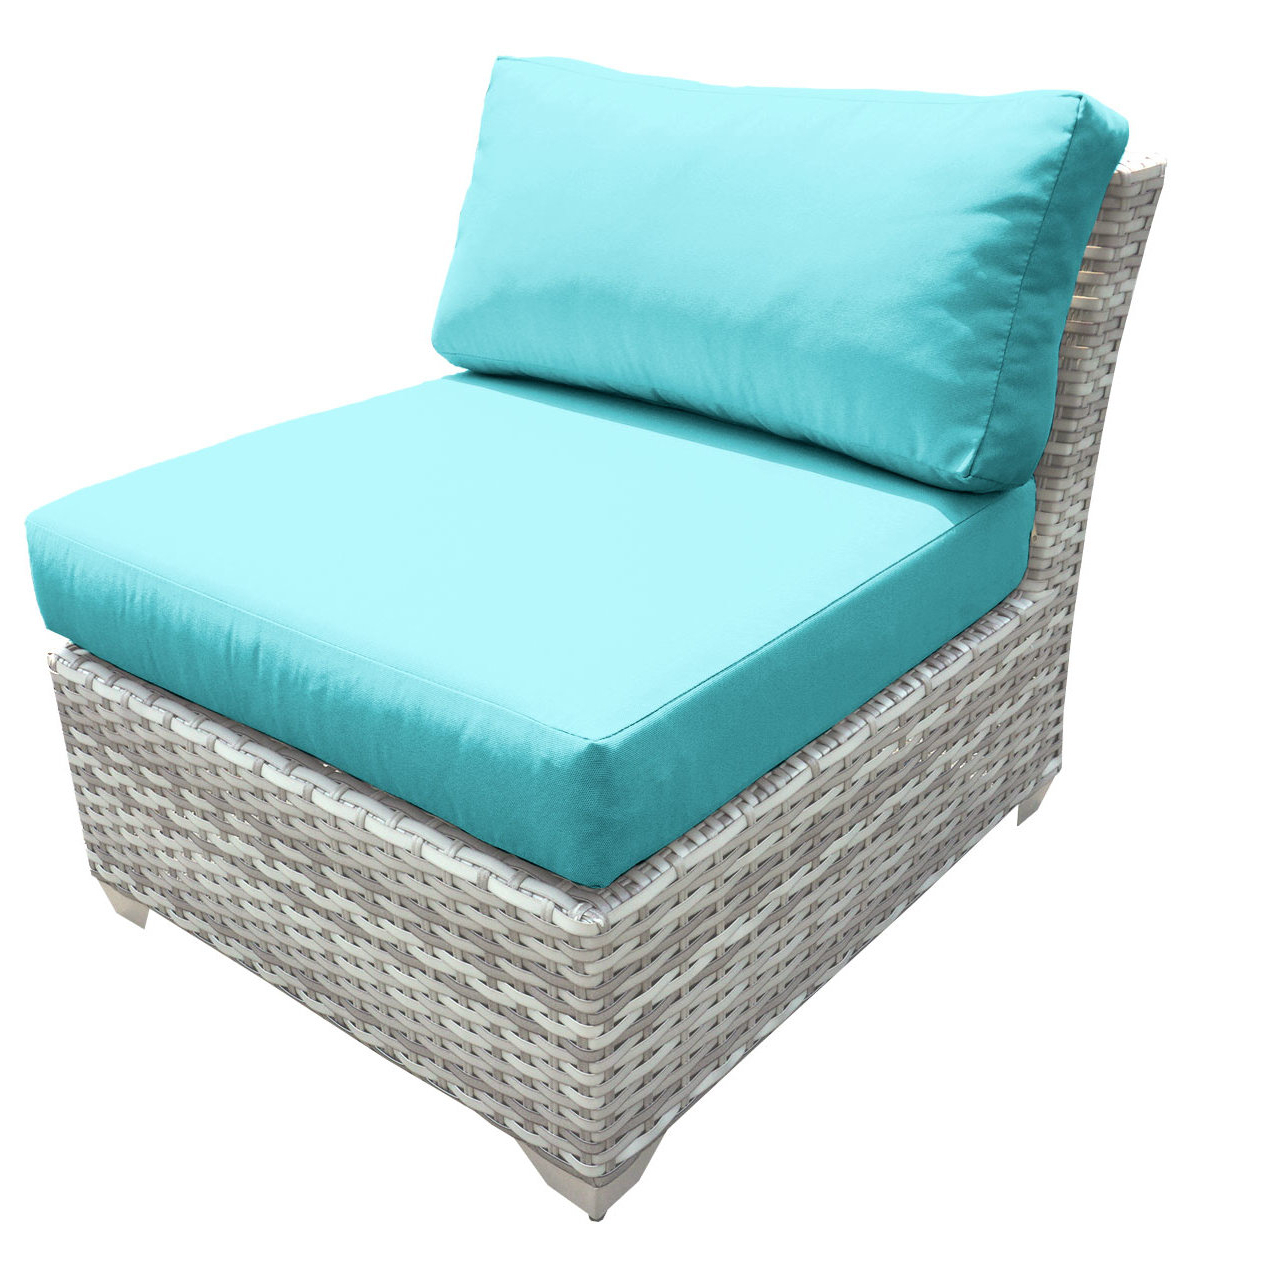 Falmouth Patio Sofas With Cushions With Regard To Trendy Falmouth Armless Patio Chair With Cushions (View 11 of 20)